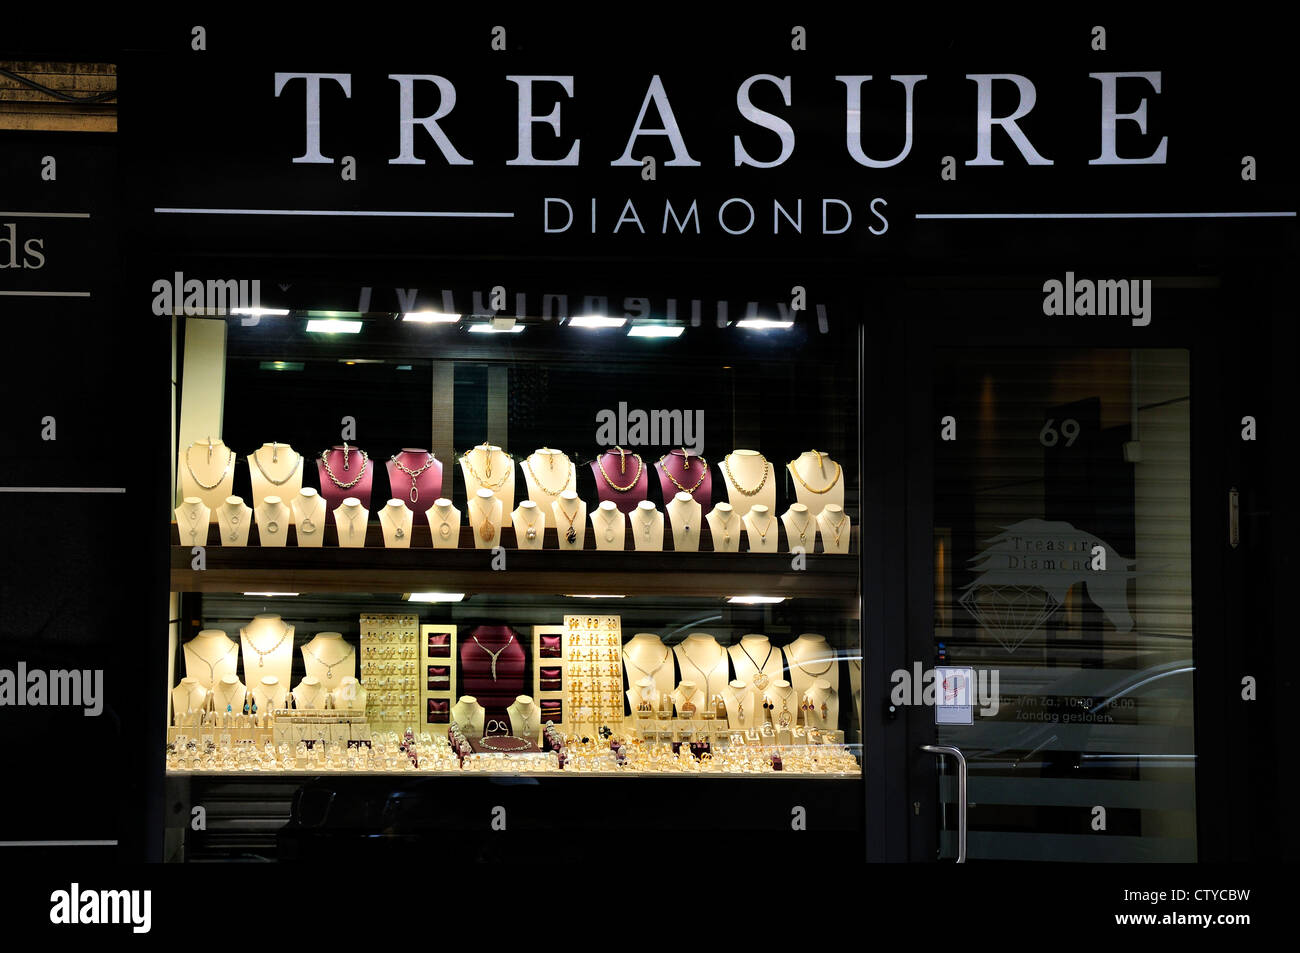 diamond photos photo brussels shop images stock image alamy